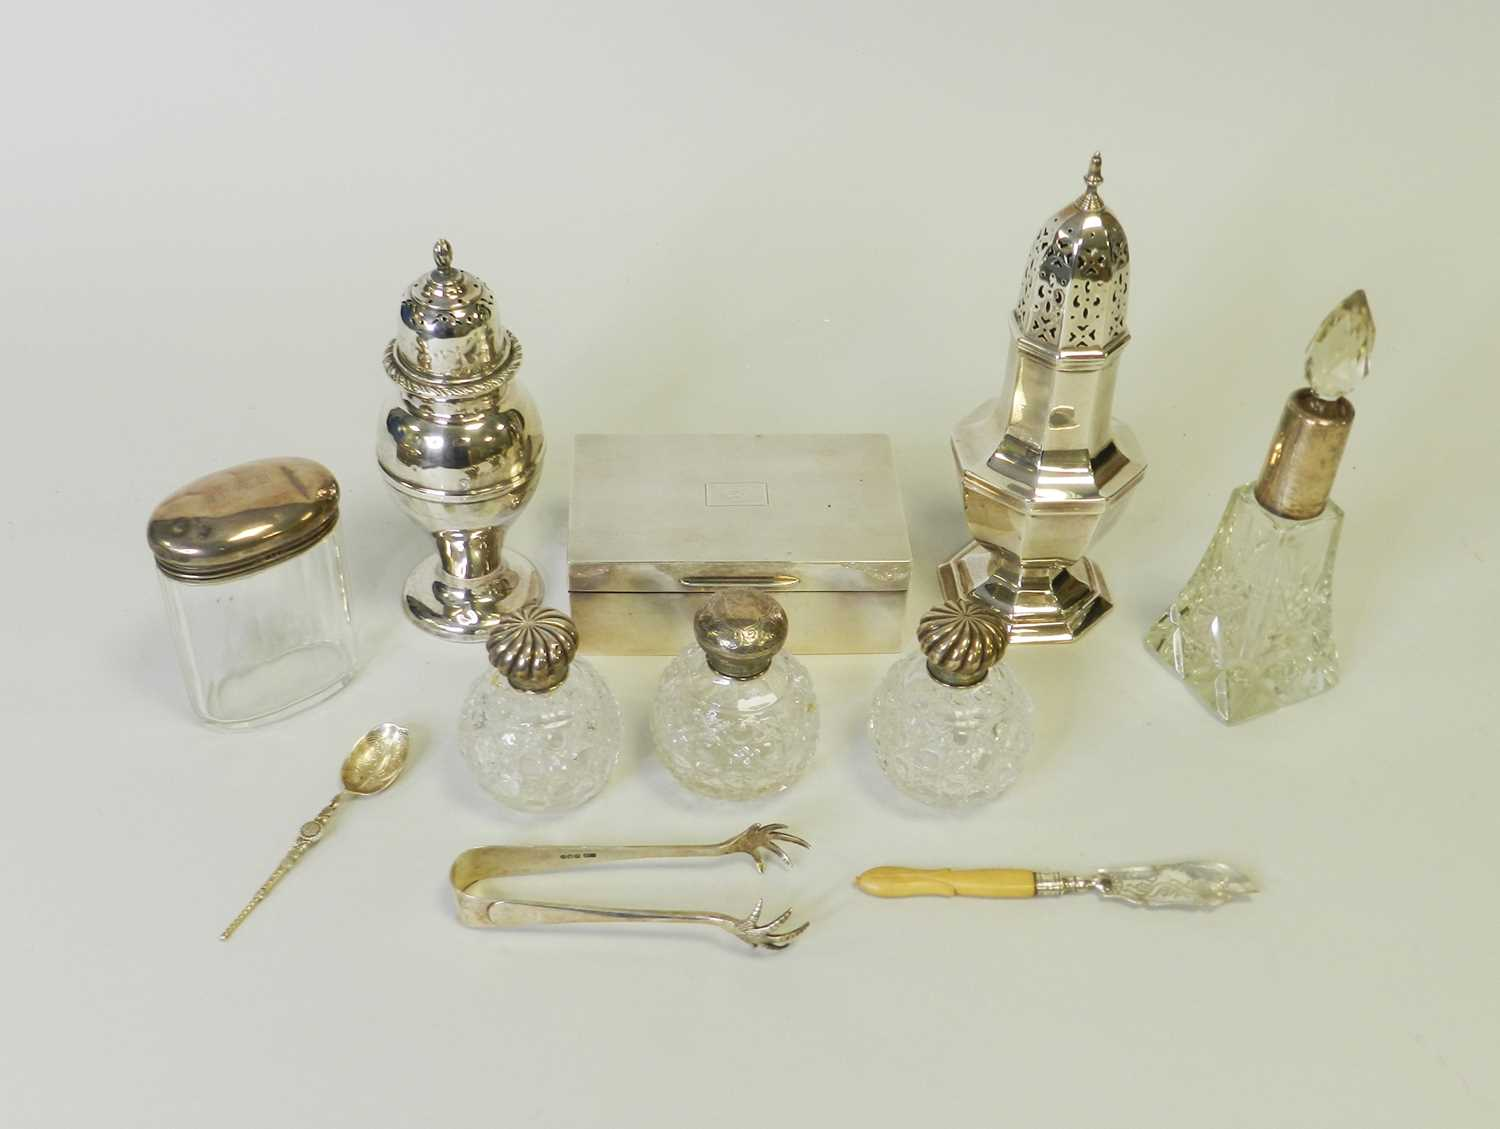 Lot 3 - A small collection of silver